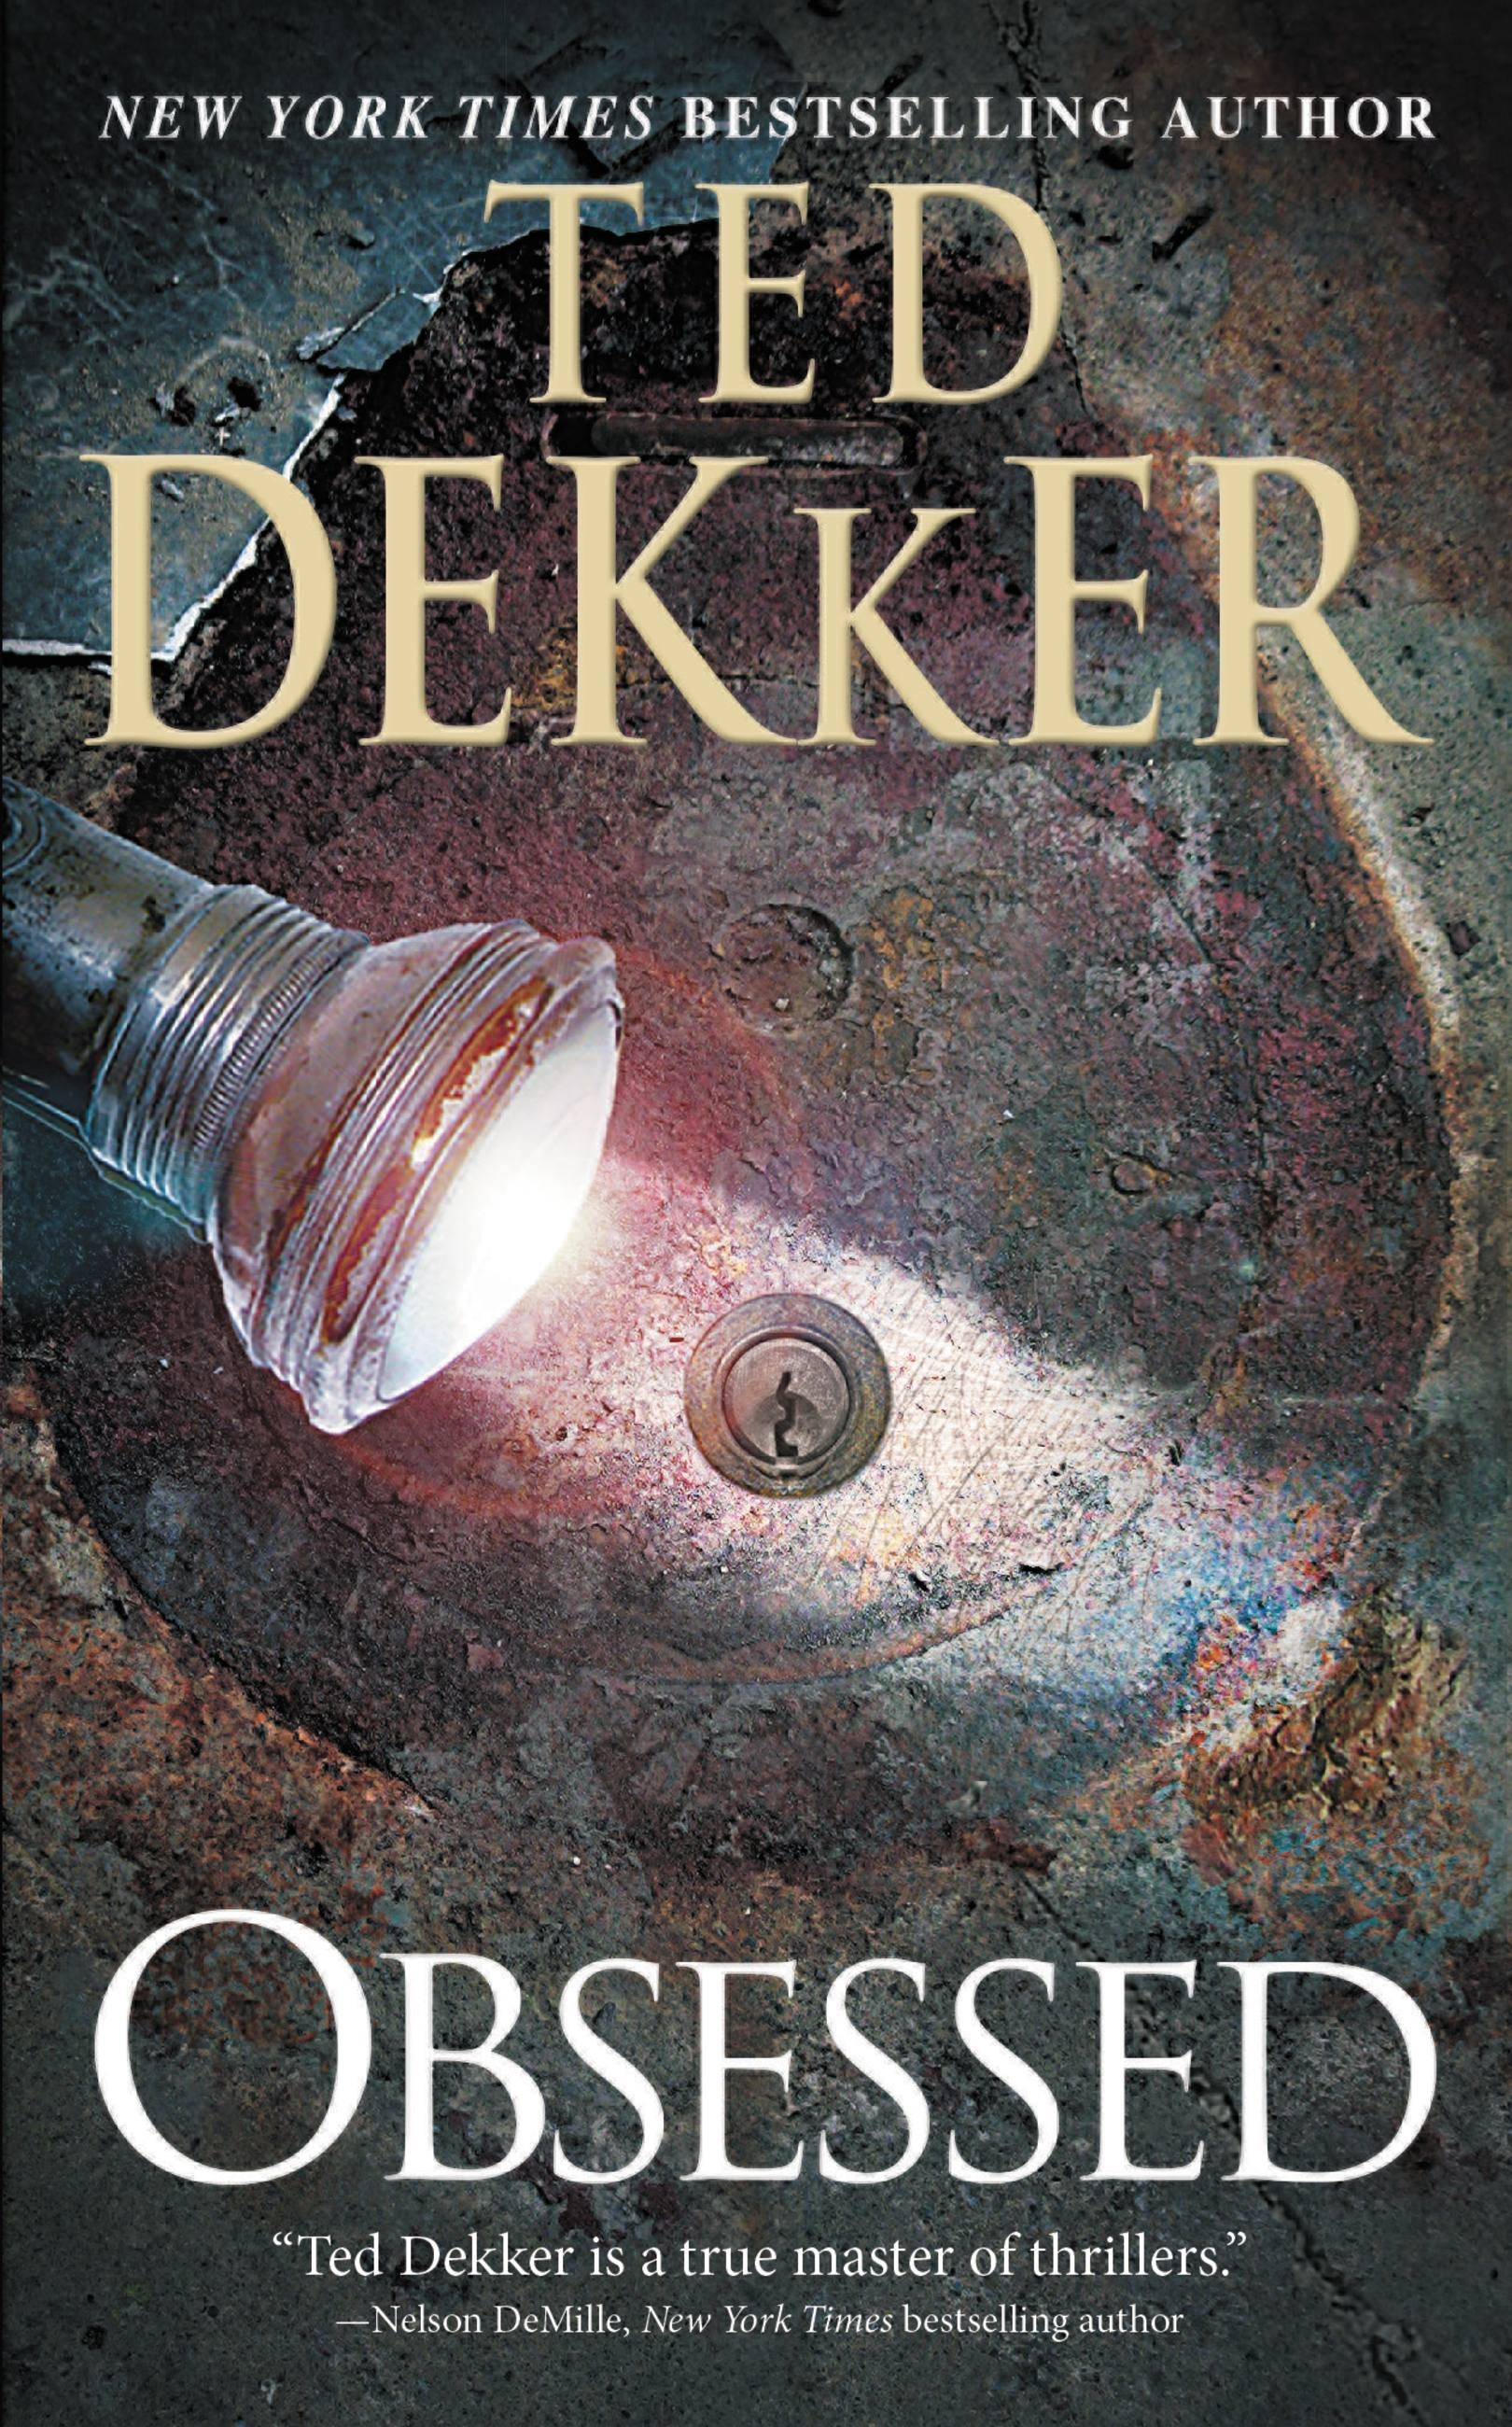 Obsessed by Ted Dekker | Hachette Book Group